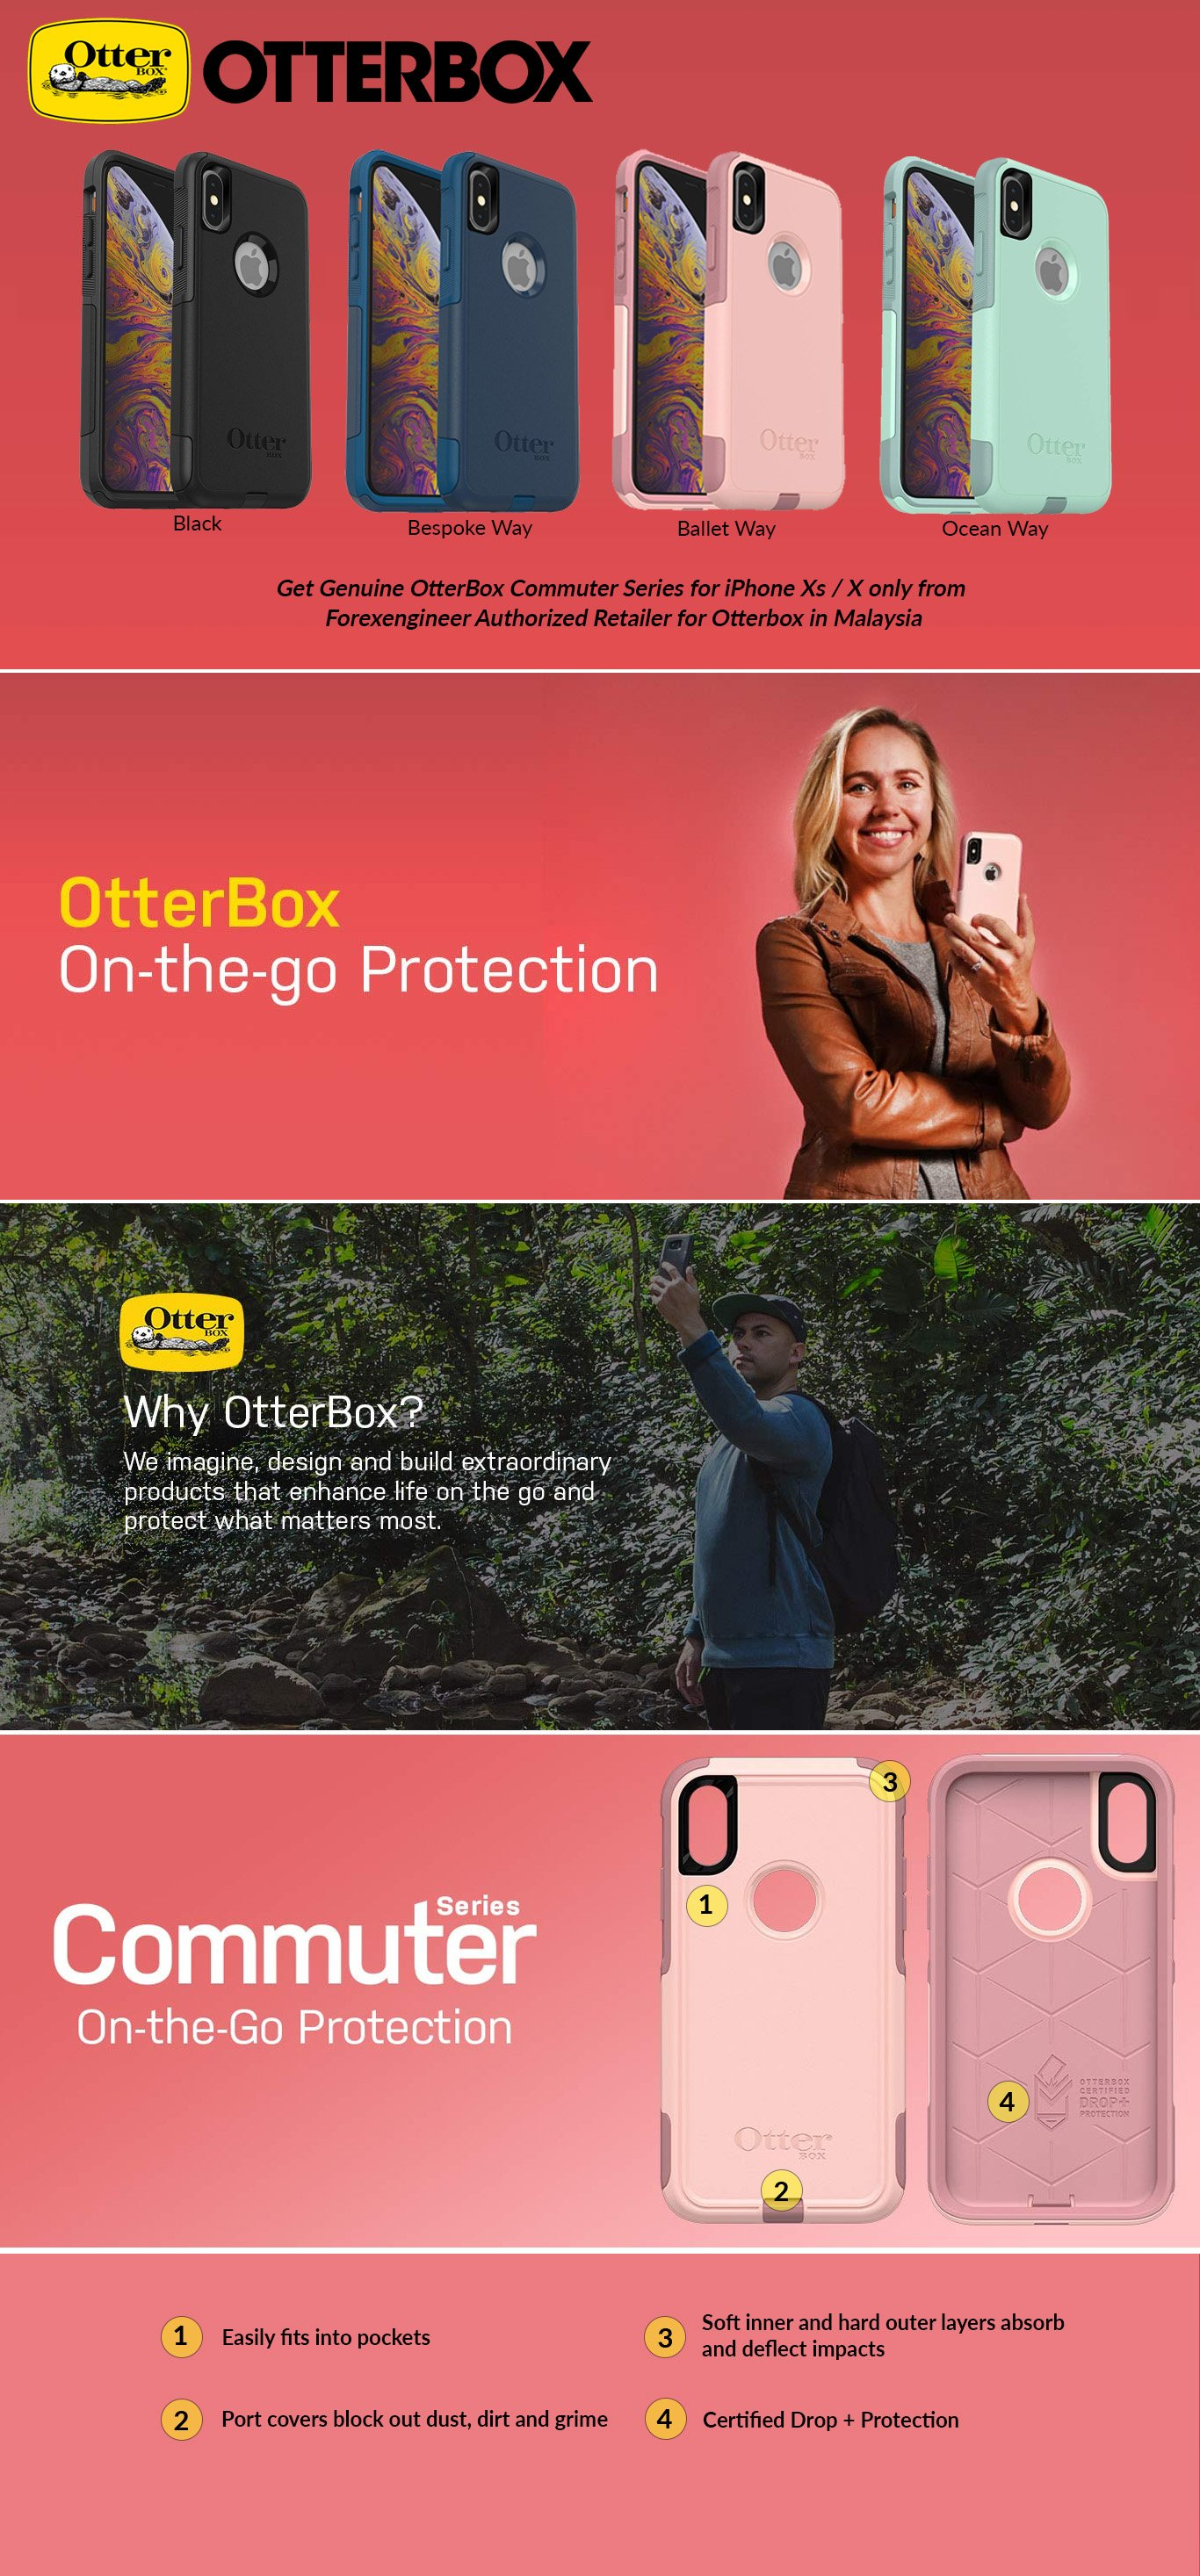 1-des-otterbox-commuter-series-iphone-xs-x-forexengineer-authorised-retailer